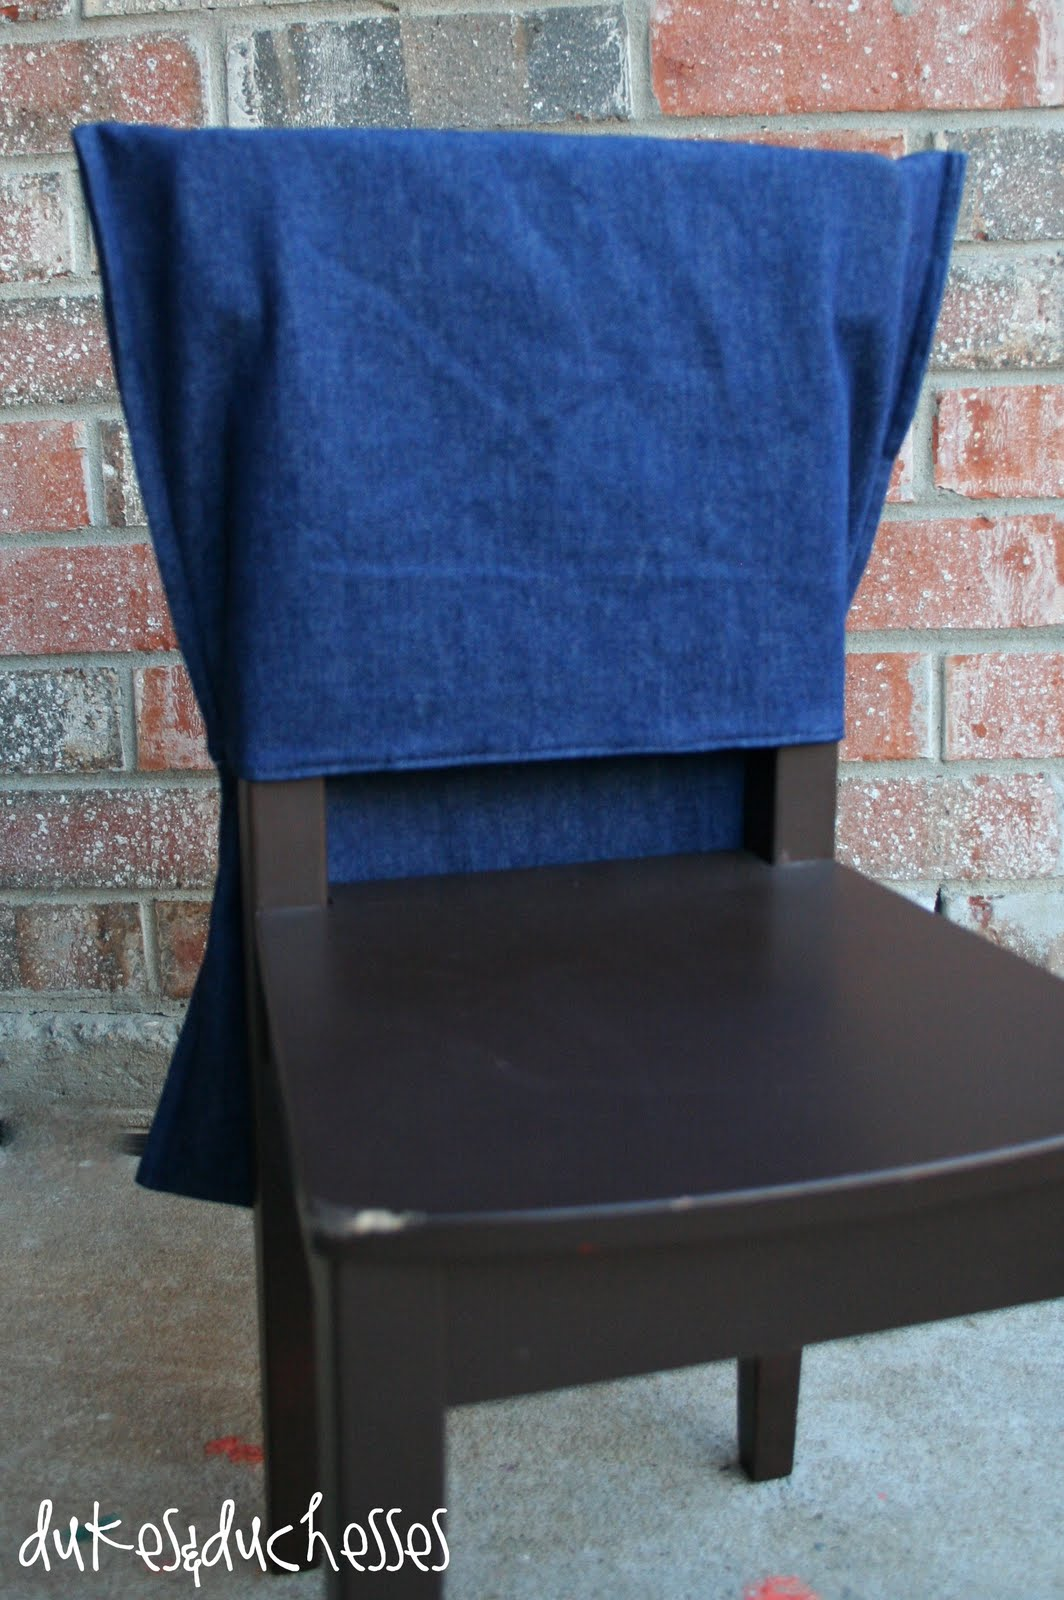 Classroom Chair Covers With Pocket Graco High Cover Replacement Pockets For The Dukes And Duchesses